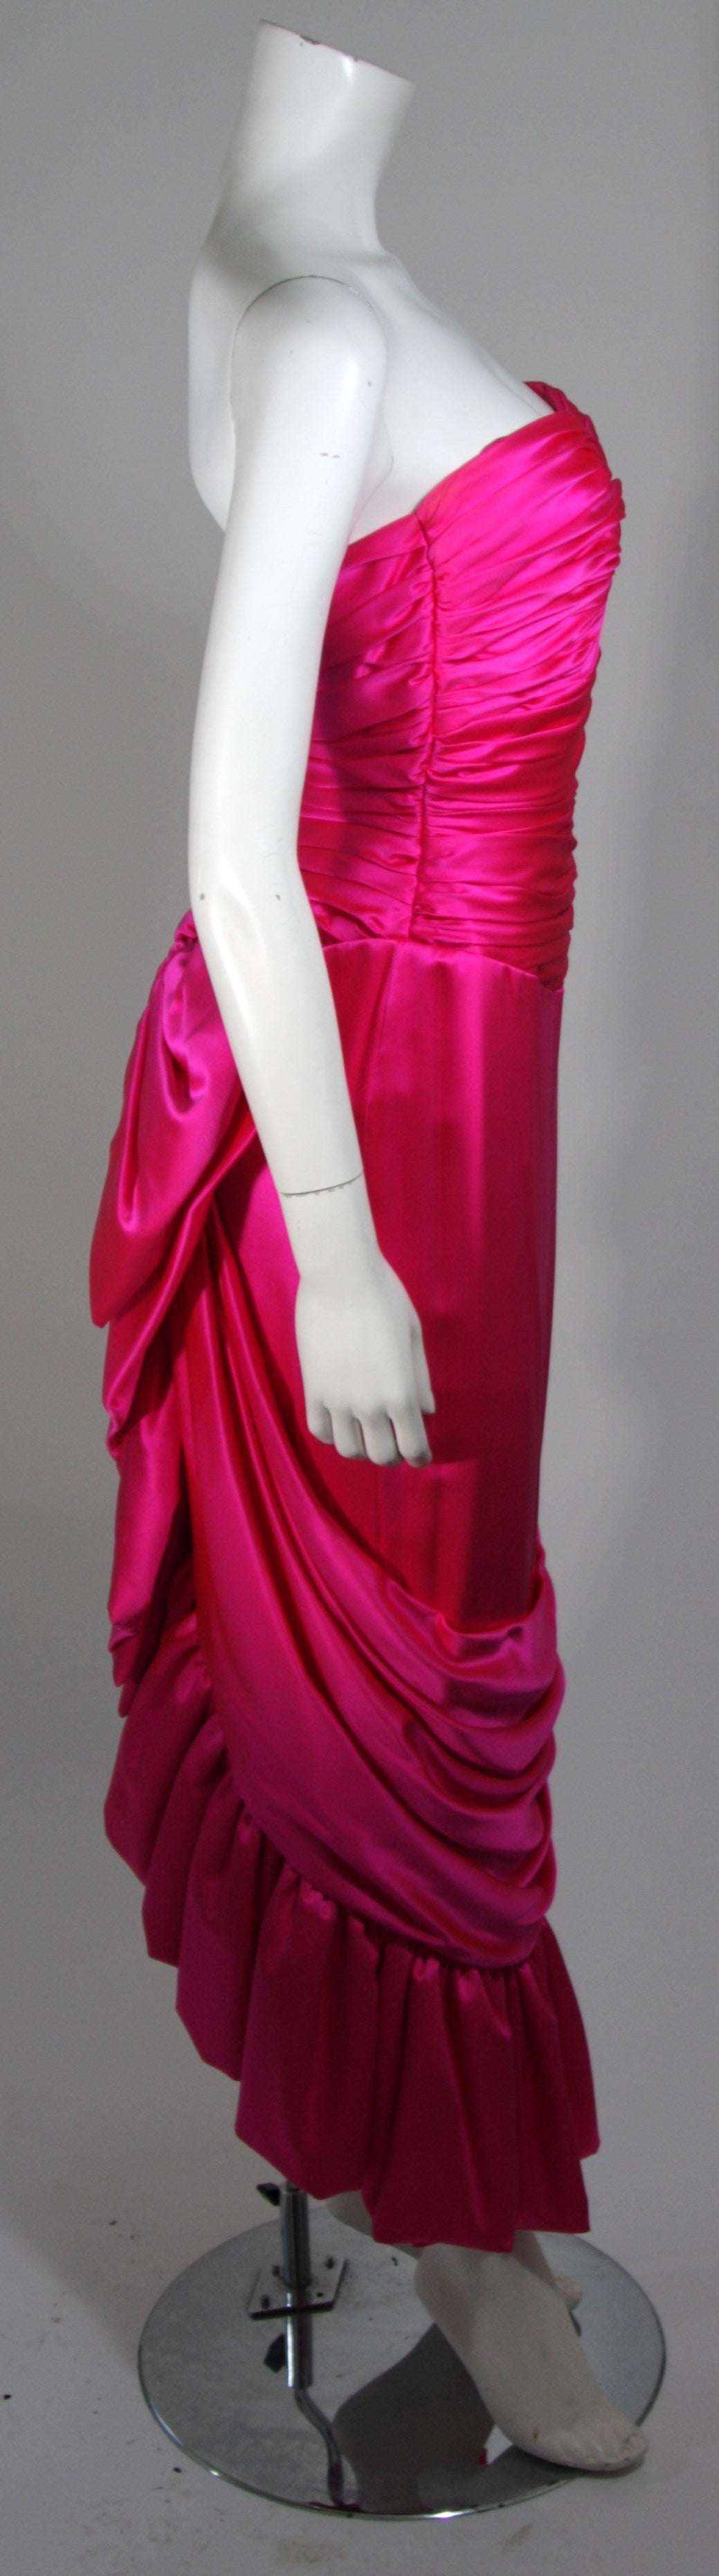 Vicky Tiel Magenta Gown with Large Bow Size Small 3